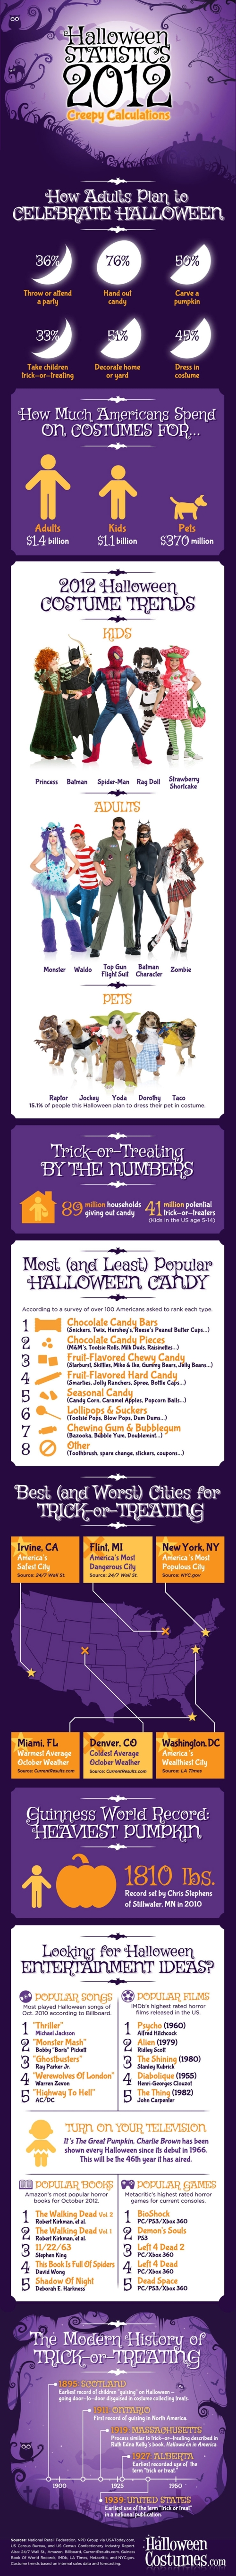 Halloween Statistics 2012: Creepy Calculations infographic